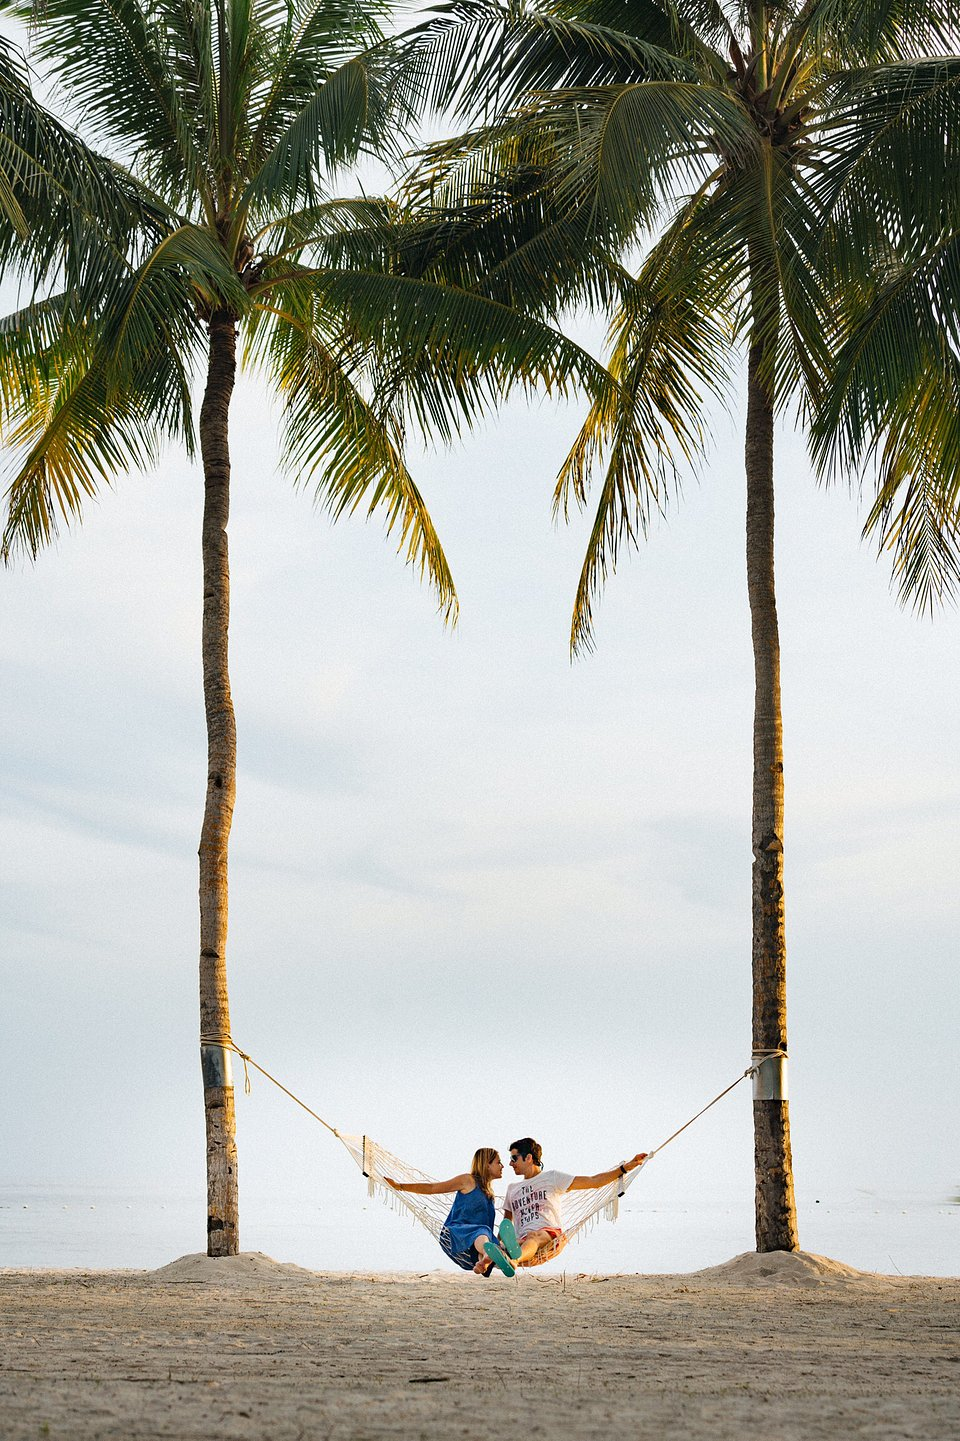 Self portrait of the photographer and his girlfriend travelling in the Philippines (Carles Alonso/AGORA images)